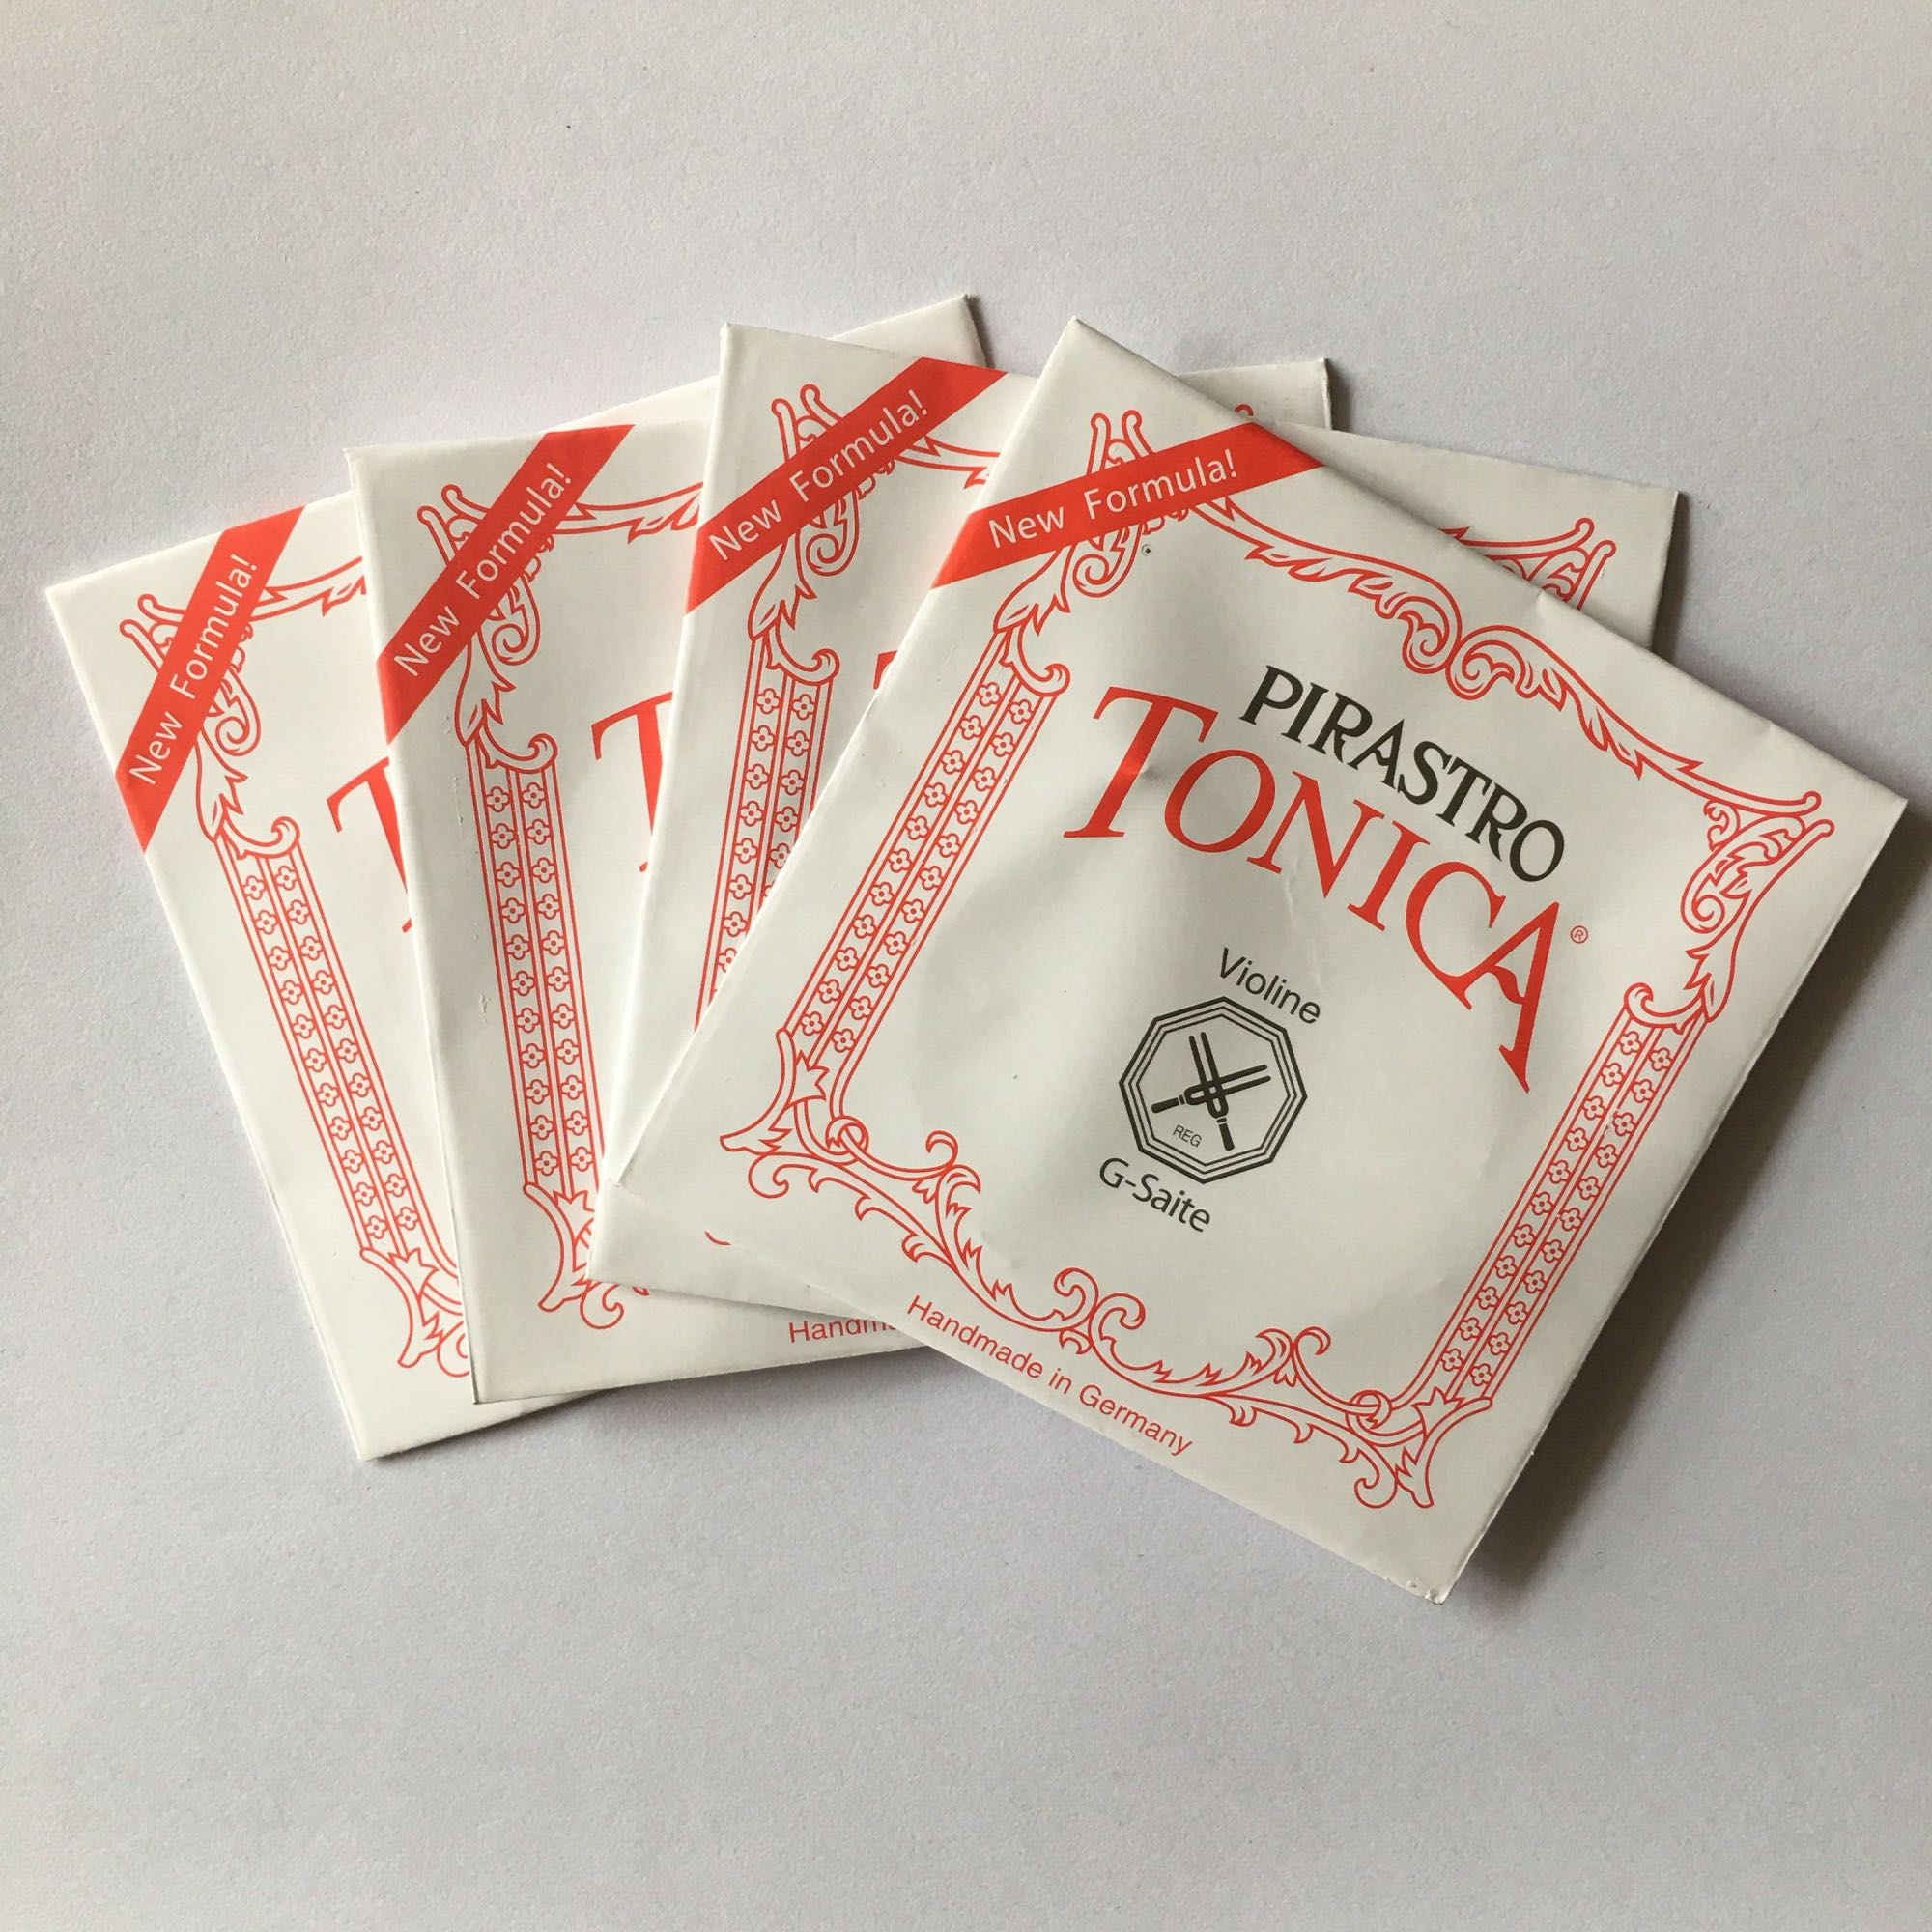 цены High Quality German Pirastro Tonica Violin Strings New Formula Full Set Ball End A, E, G, D Violino String For 3/4 4/4 Violin